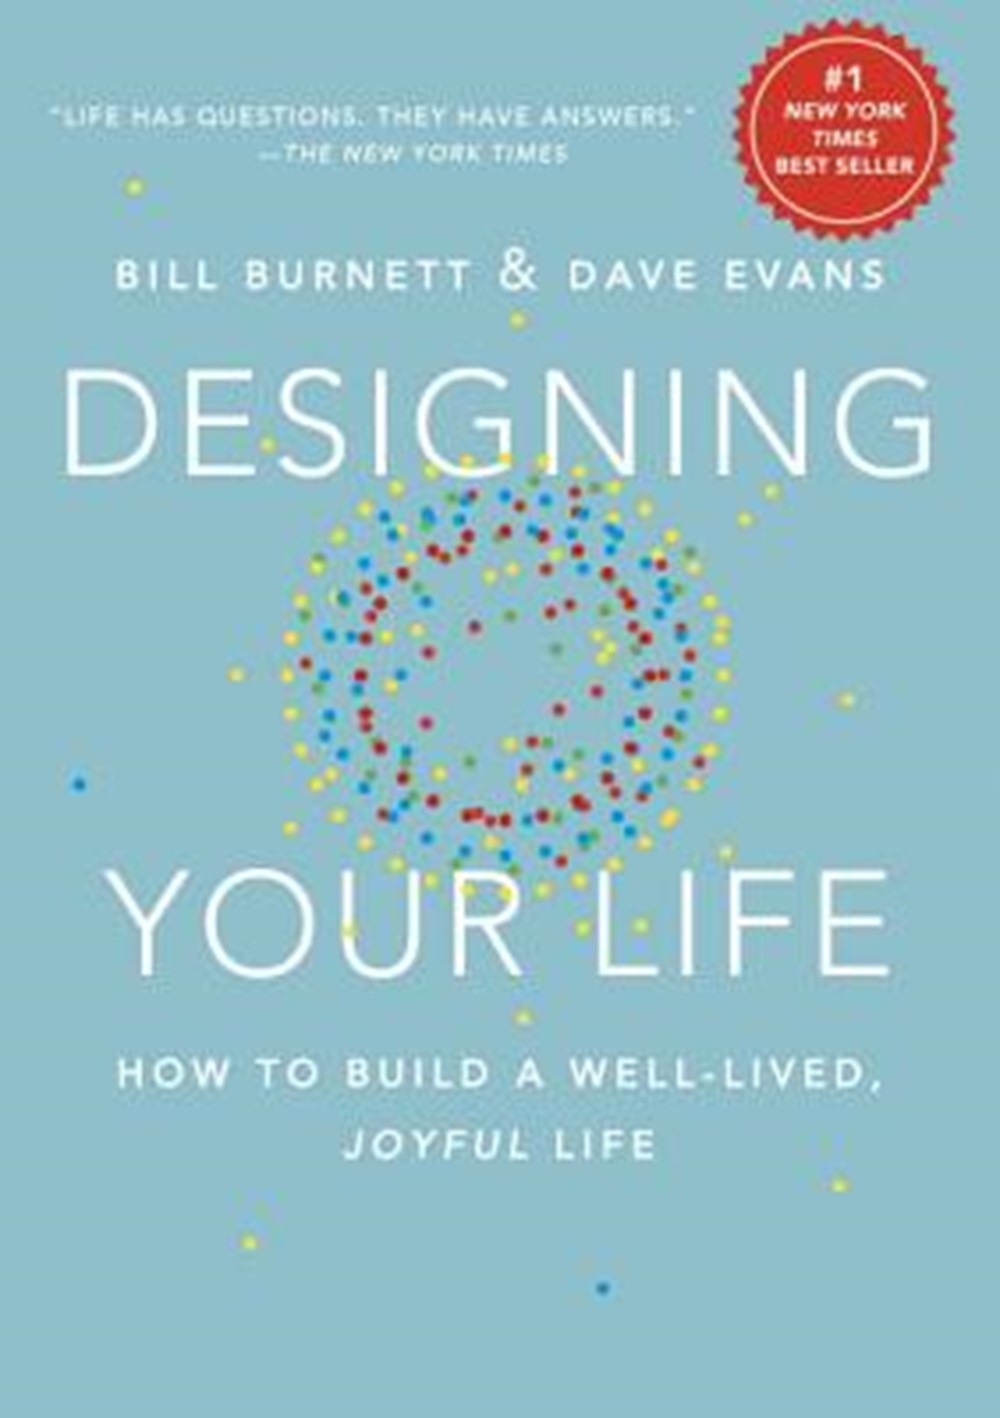 Designing Your Life How to Build a Well-Lived, Joyful Life